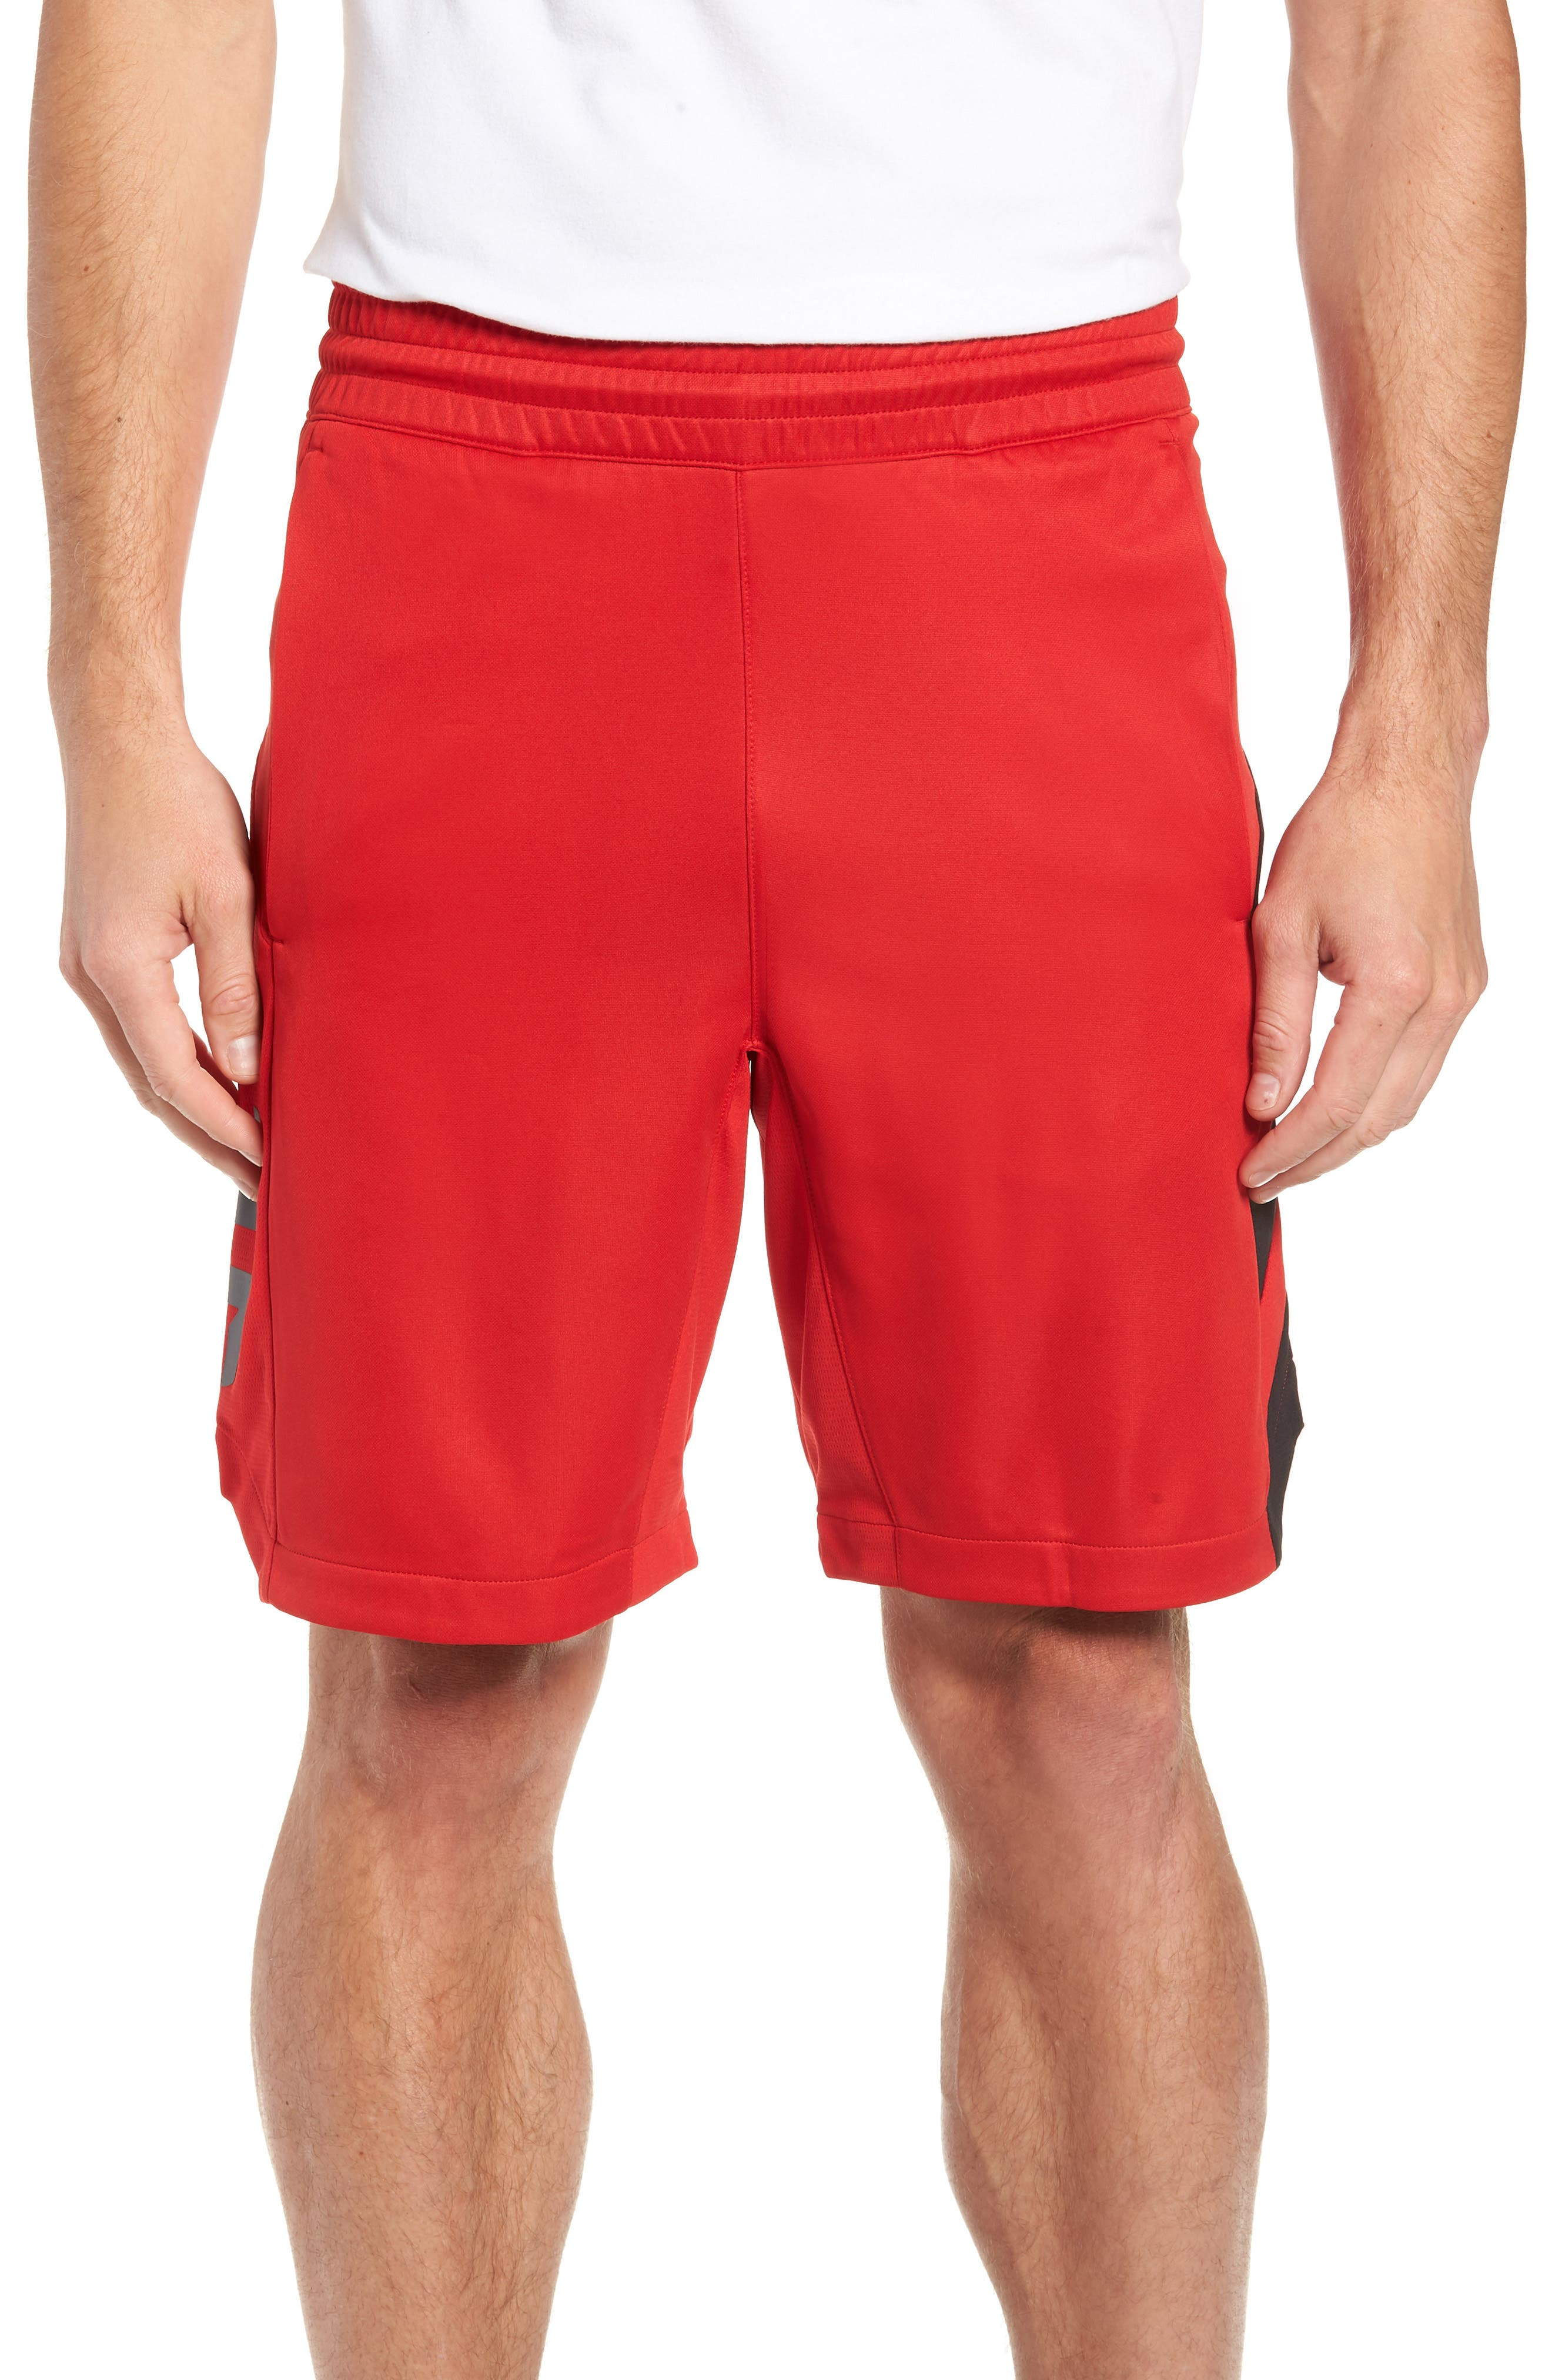 Harden Performance Shorts,                             Main thumbnail 1, color,                             SCARLET